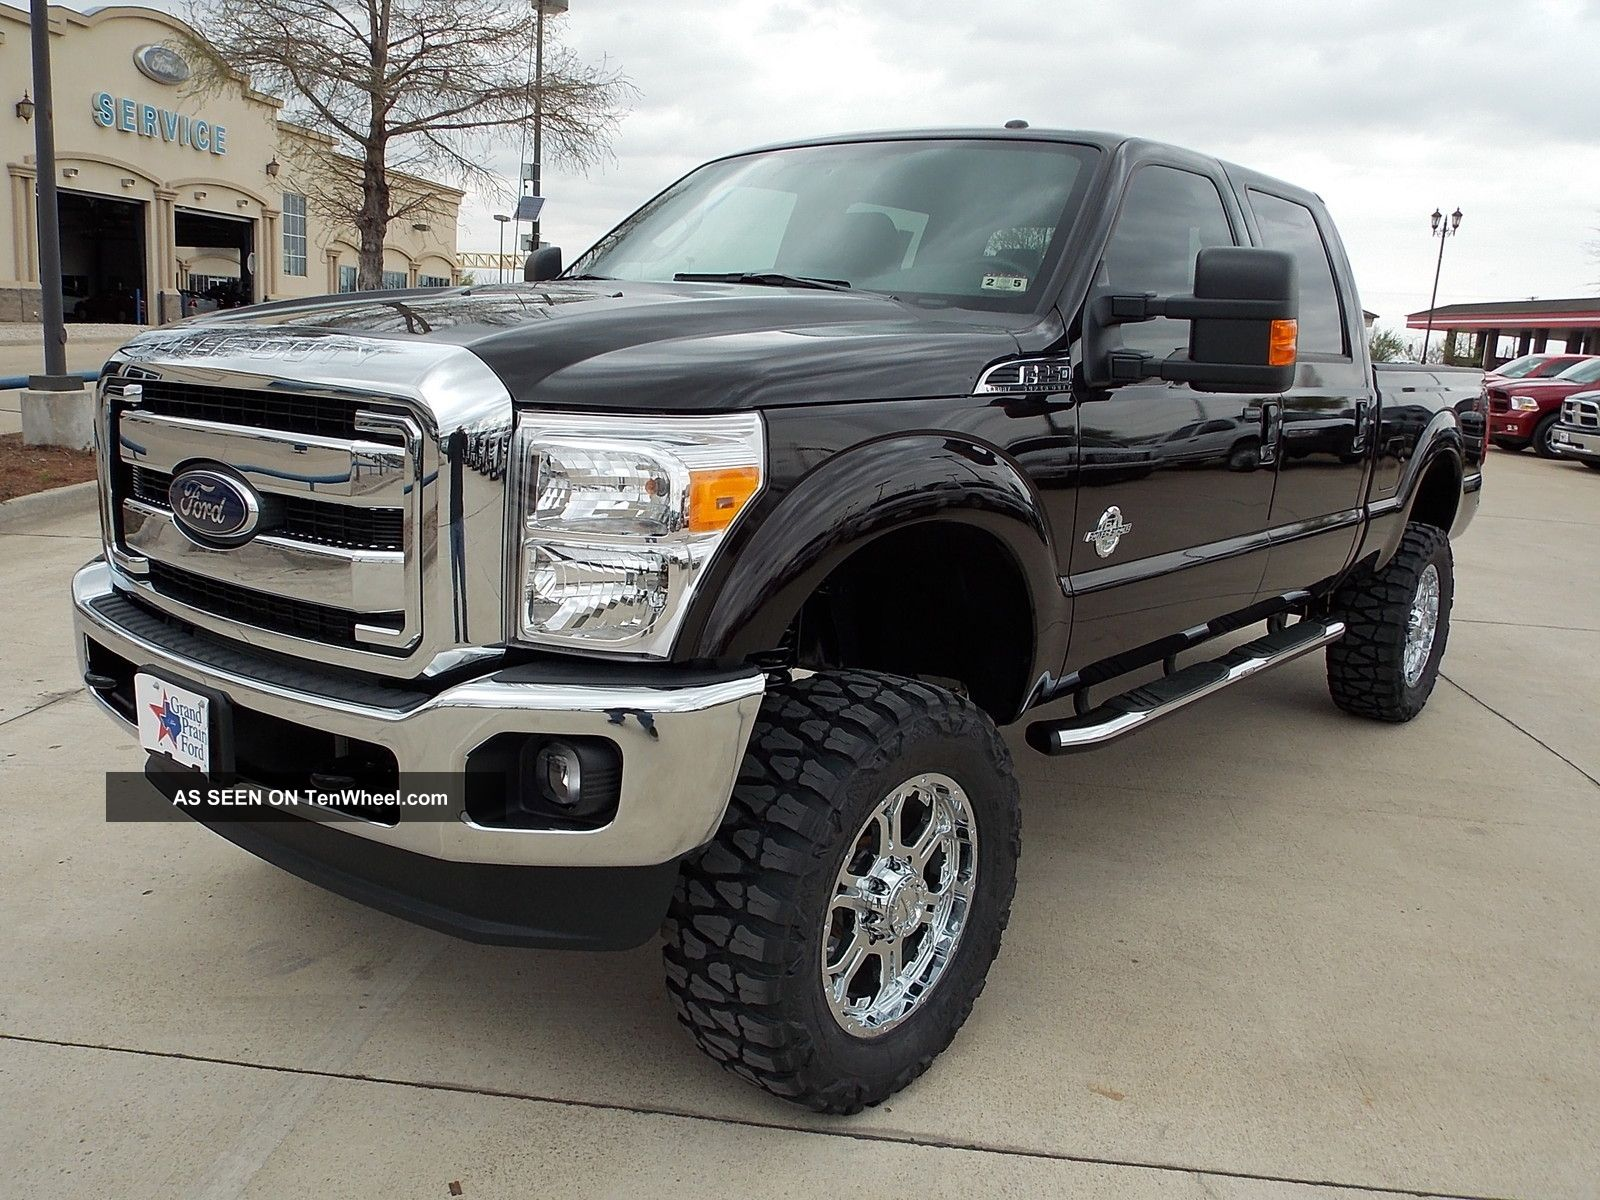 Ford f-250 2013 photo - 7